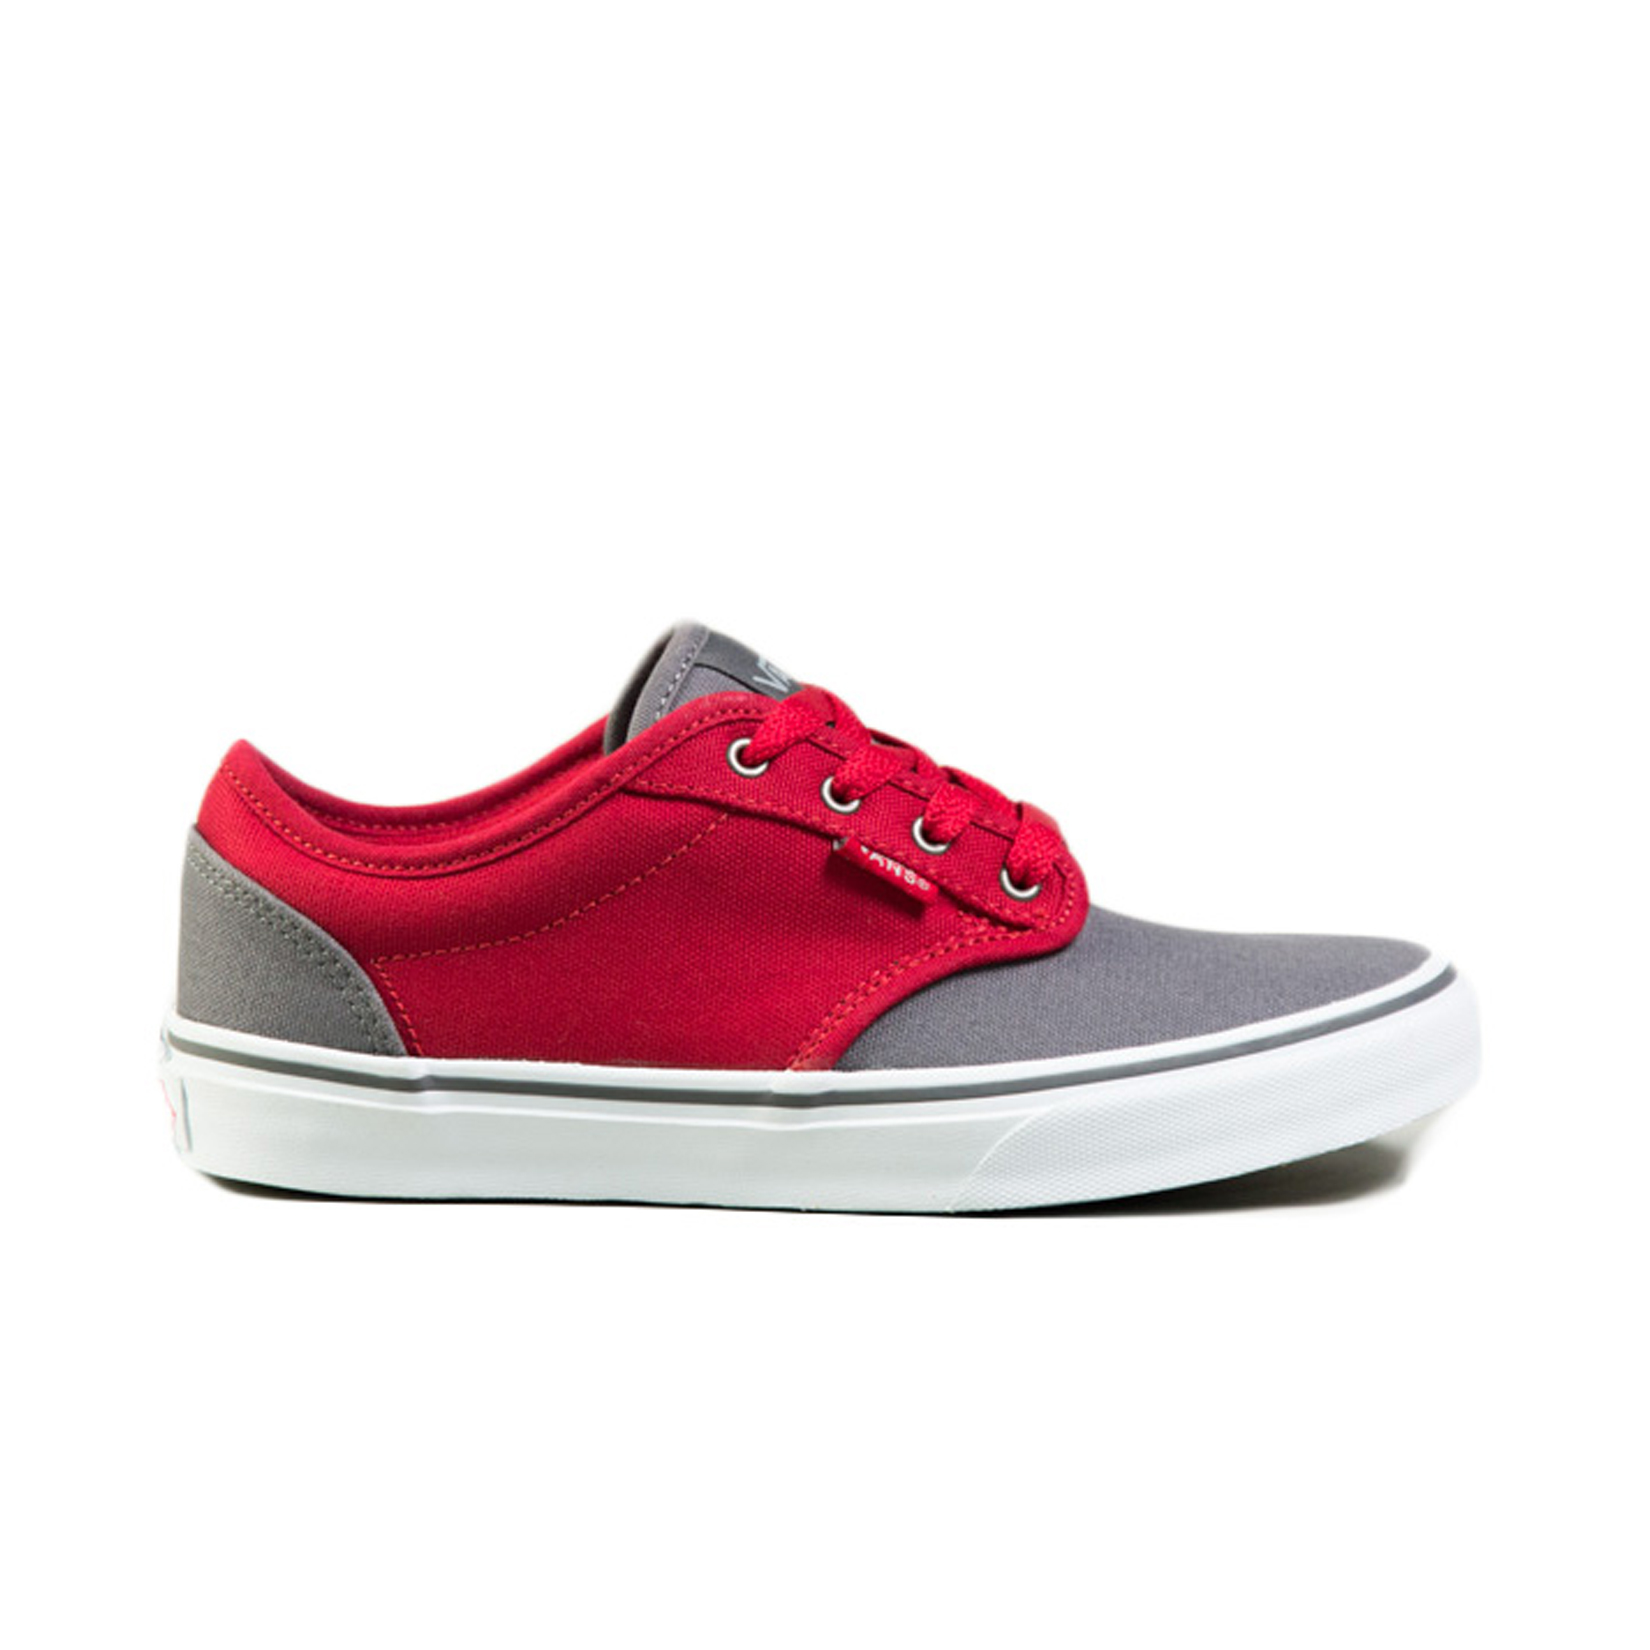 Unisex Shoes Vans Atwood Red - Grey